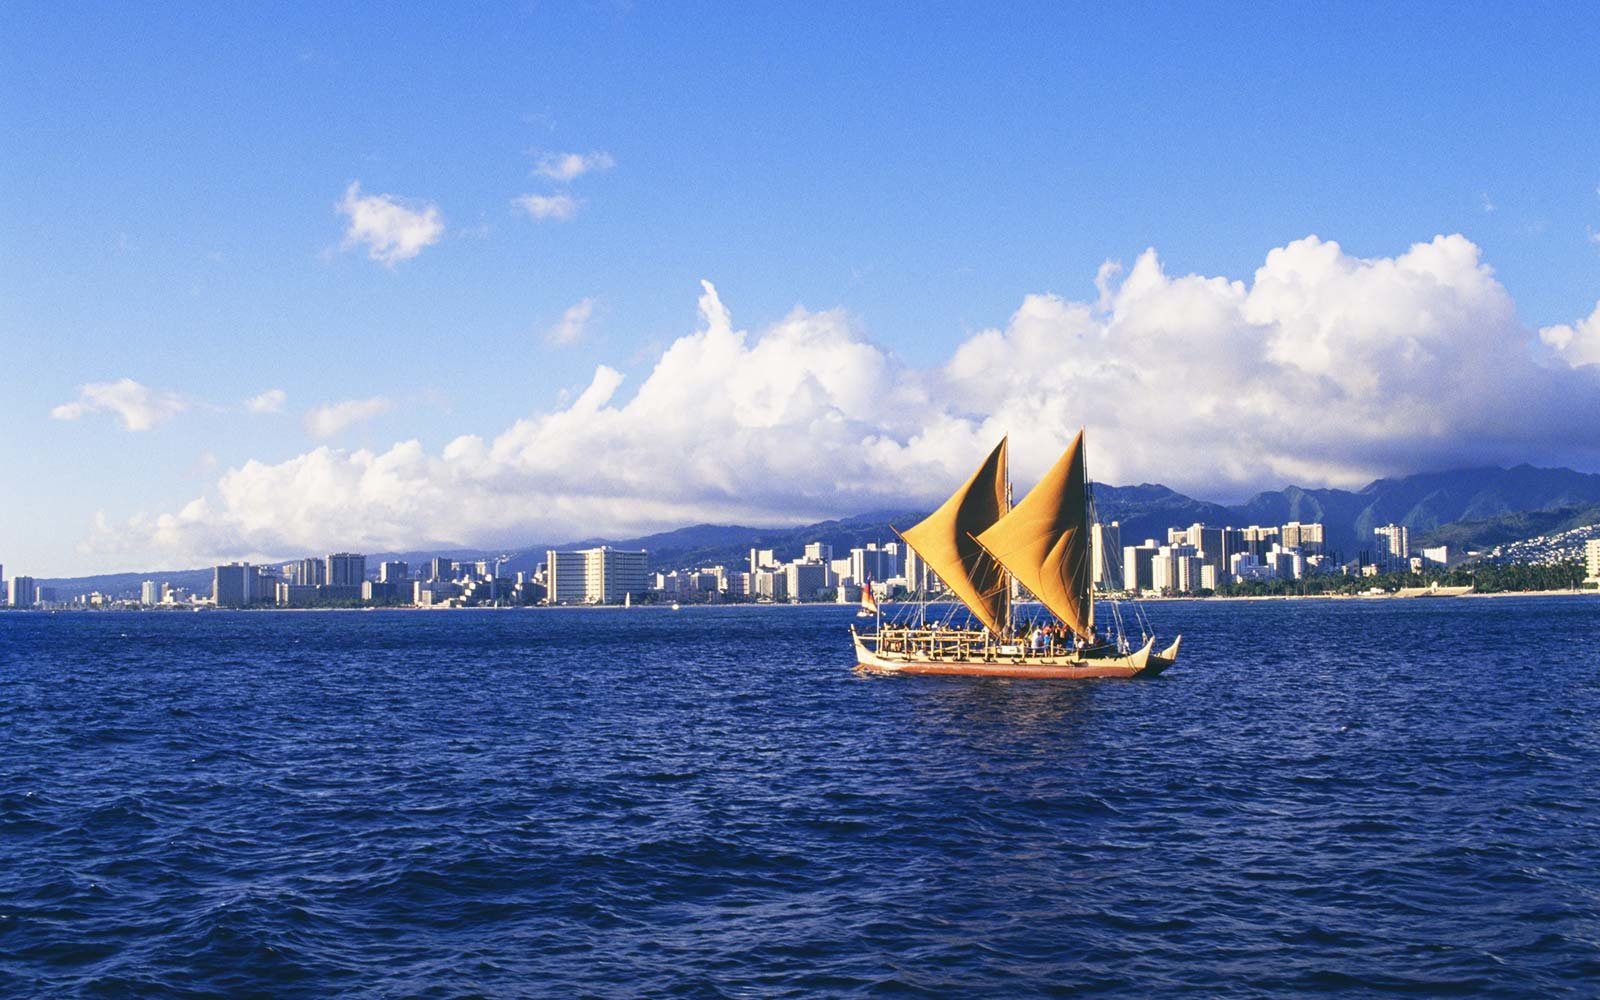 Hokulea Ancient Canoe Hawaii Travels Around the World